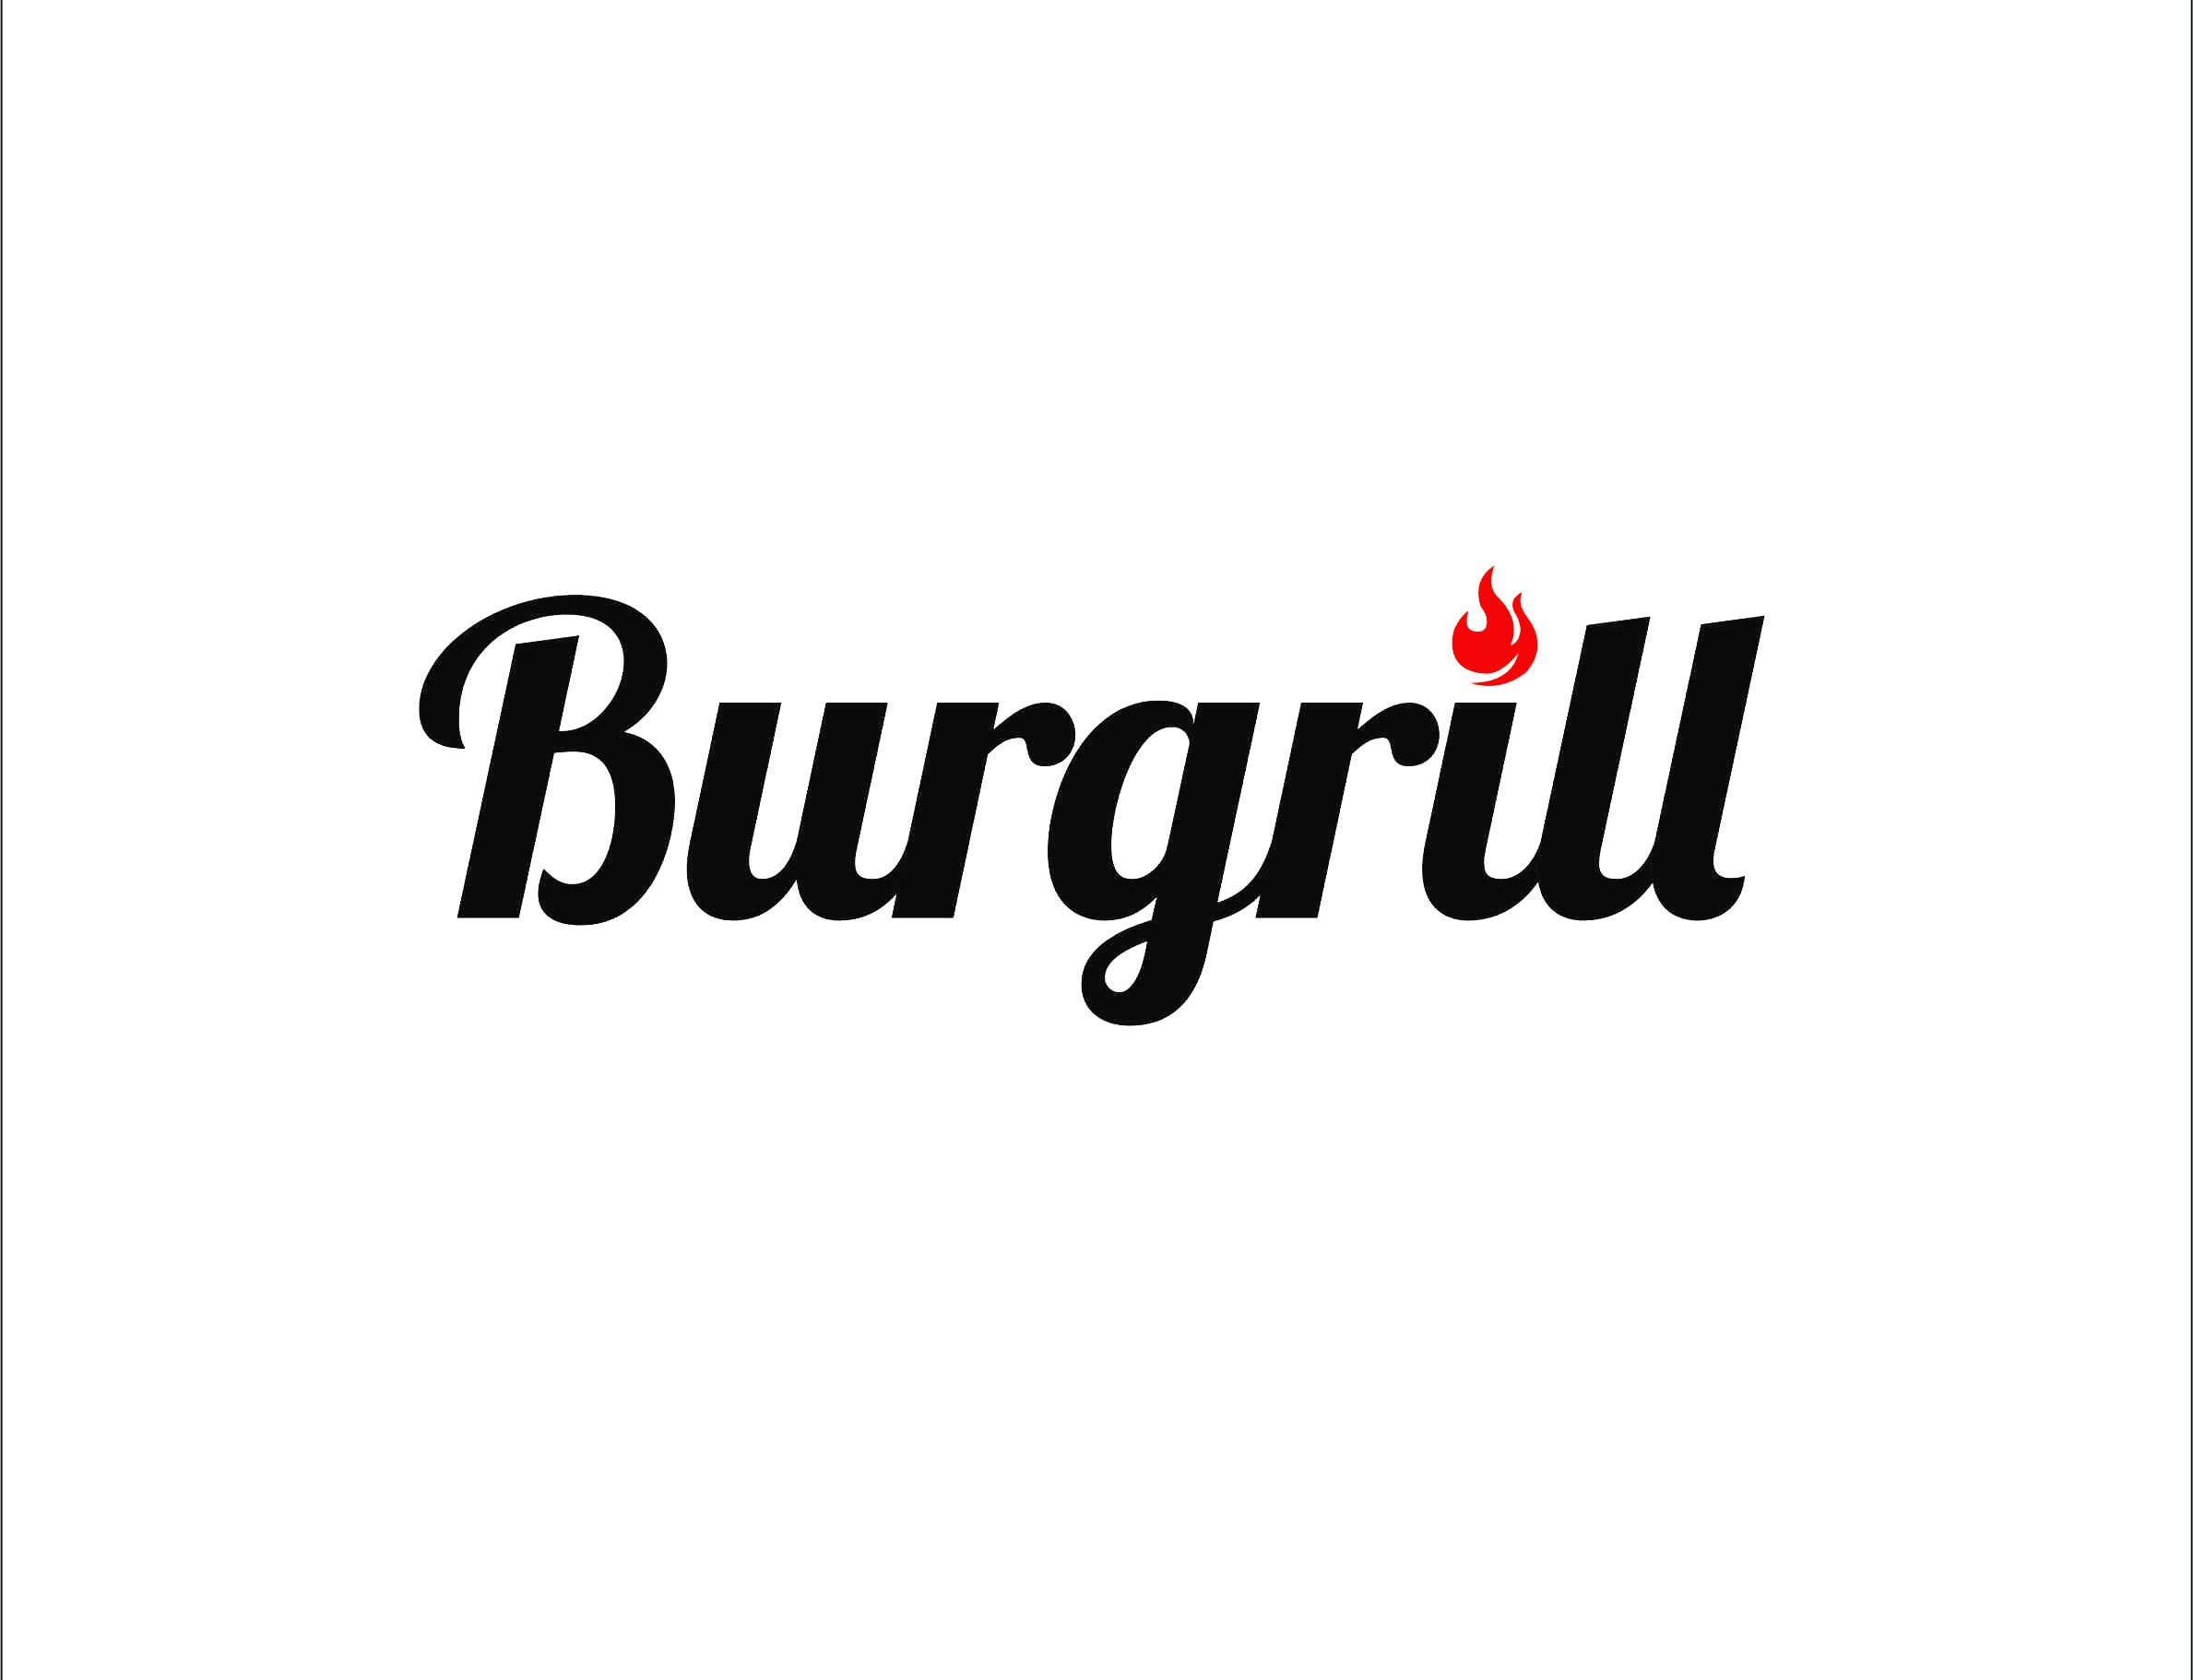 Burgrill